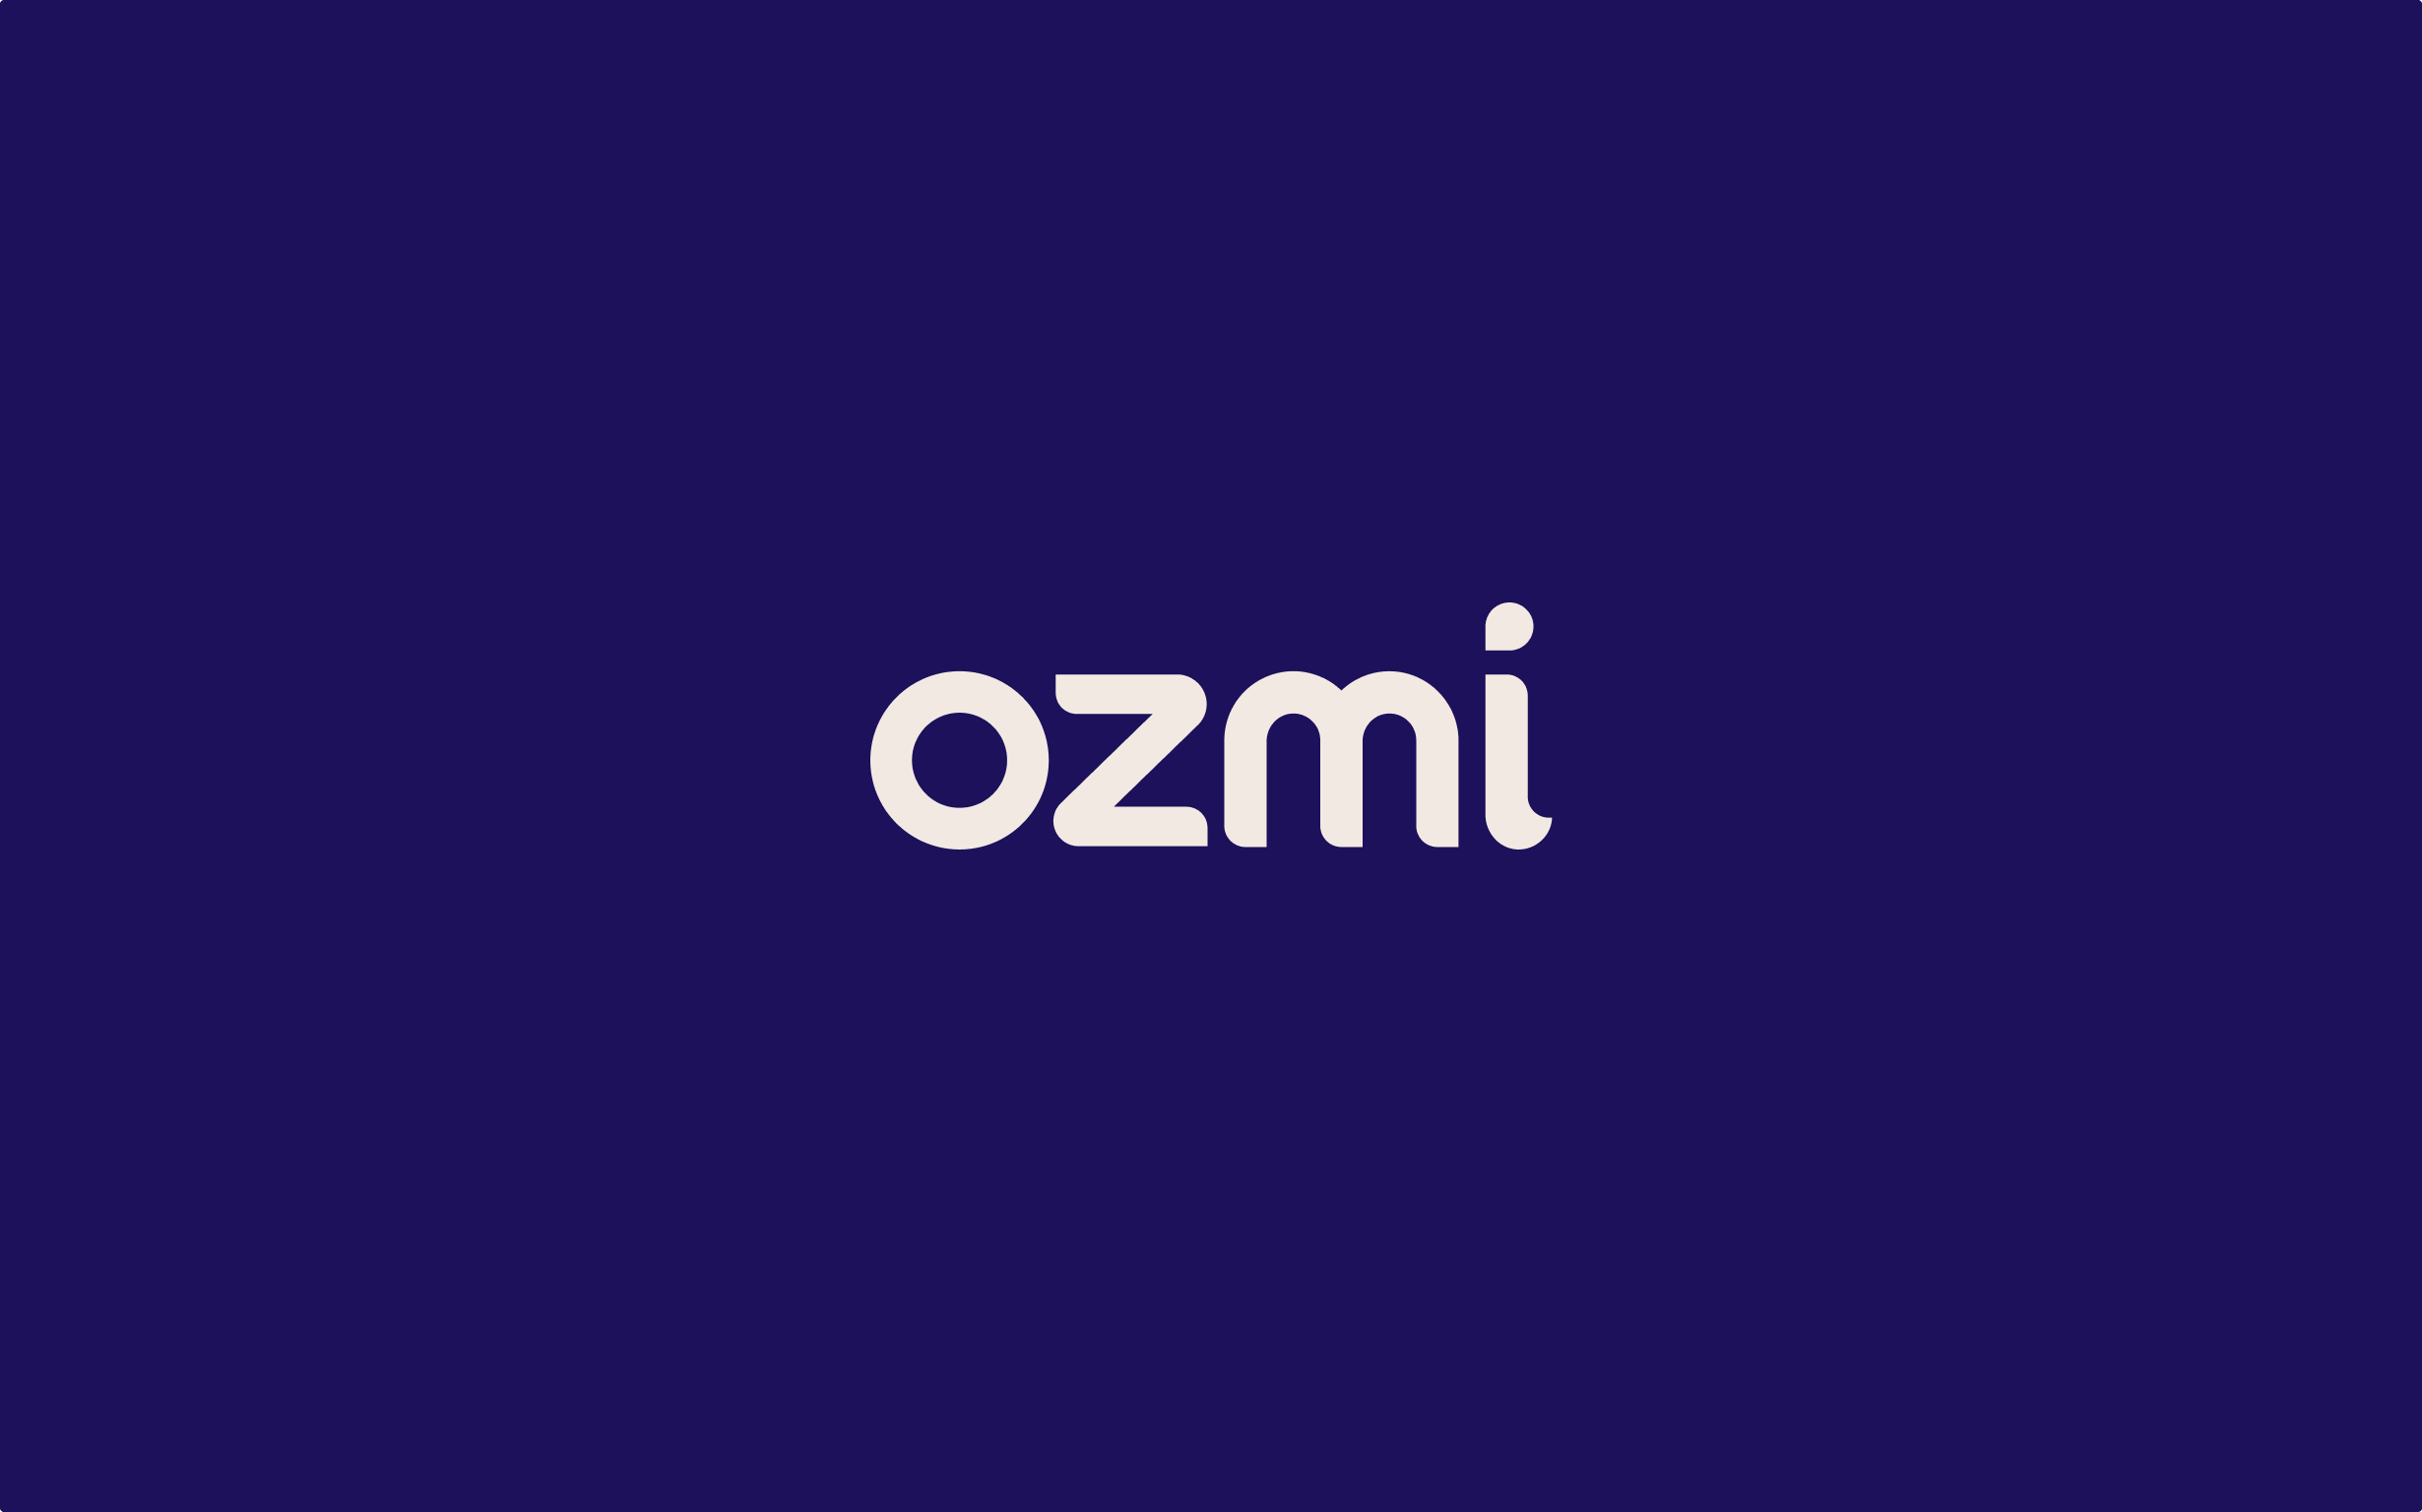 Ozmi's logo is a cream-colored wordmark on a dark purple solid background, with the dot in the i forming a dollop shape.